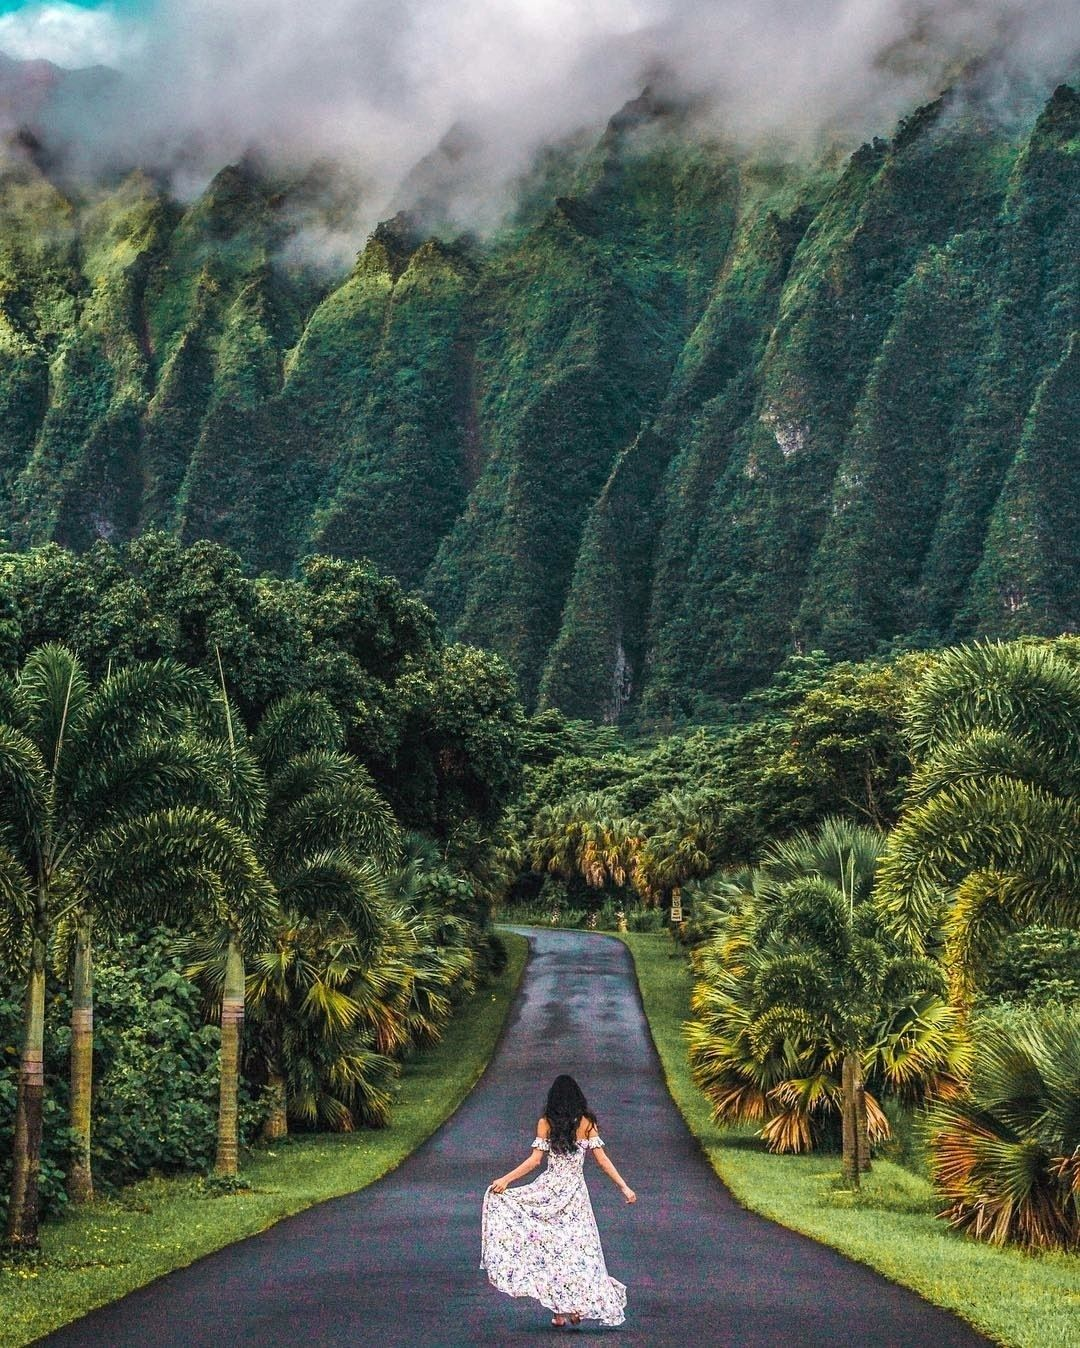 Now Discovering the Ho'omaluhia Botanical Garden in Oahu